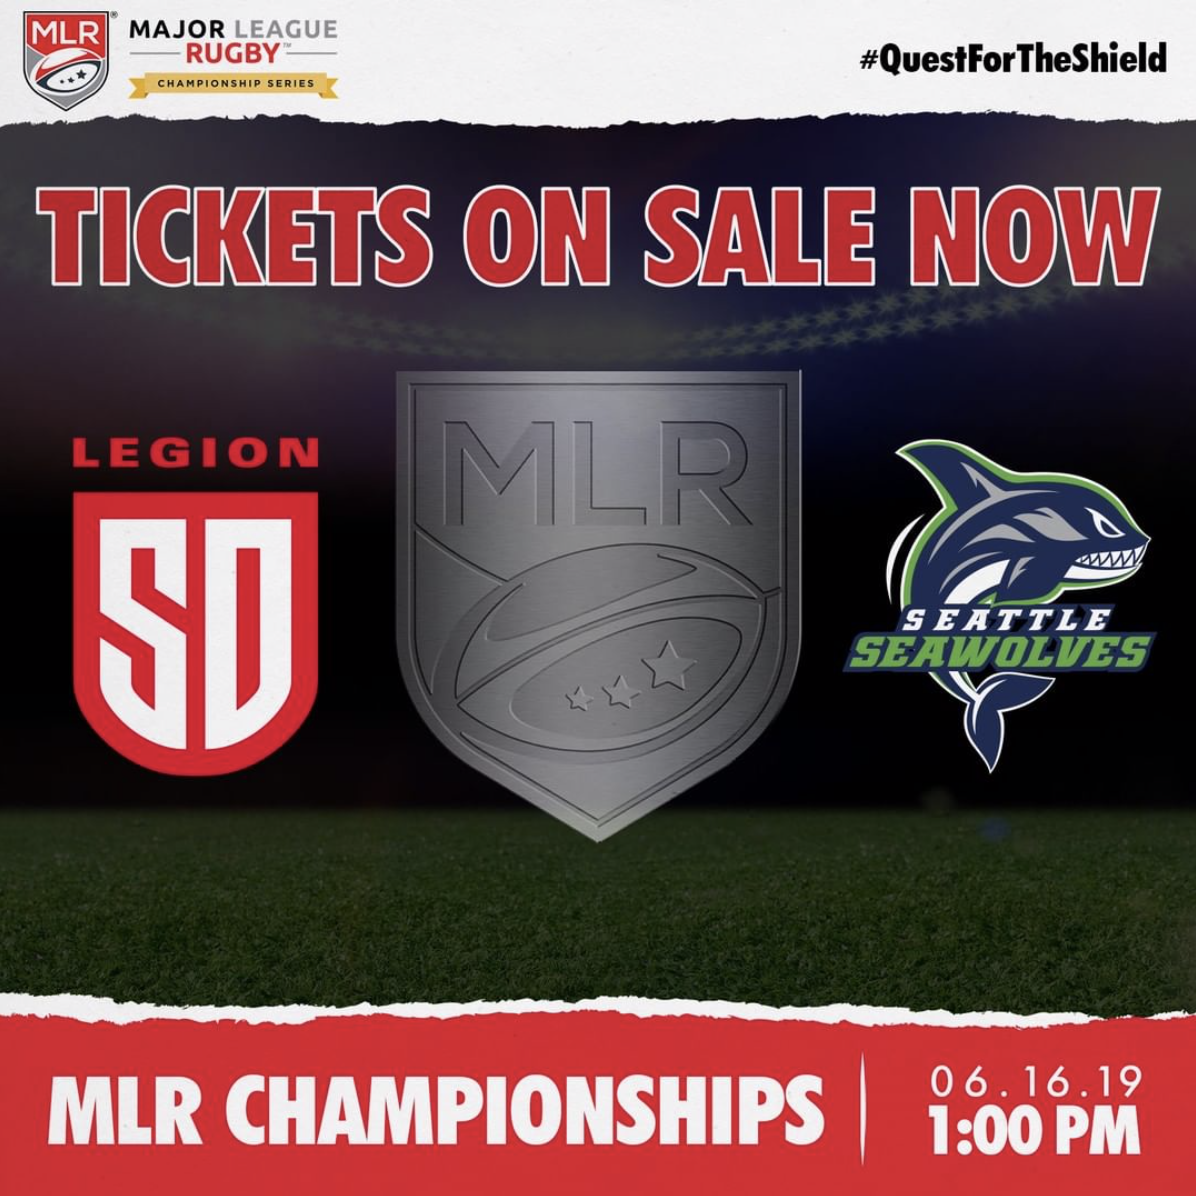 Don't Miss The Major League Rugby National Championship at University of San Diego - June 16!